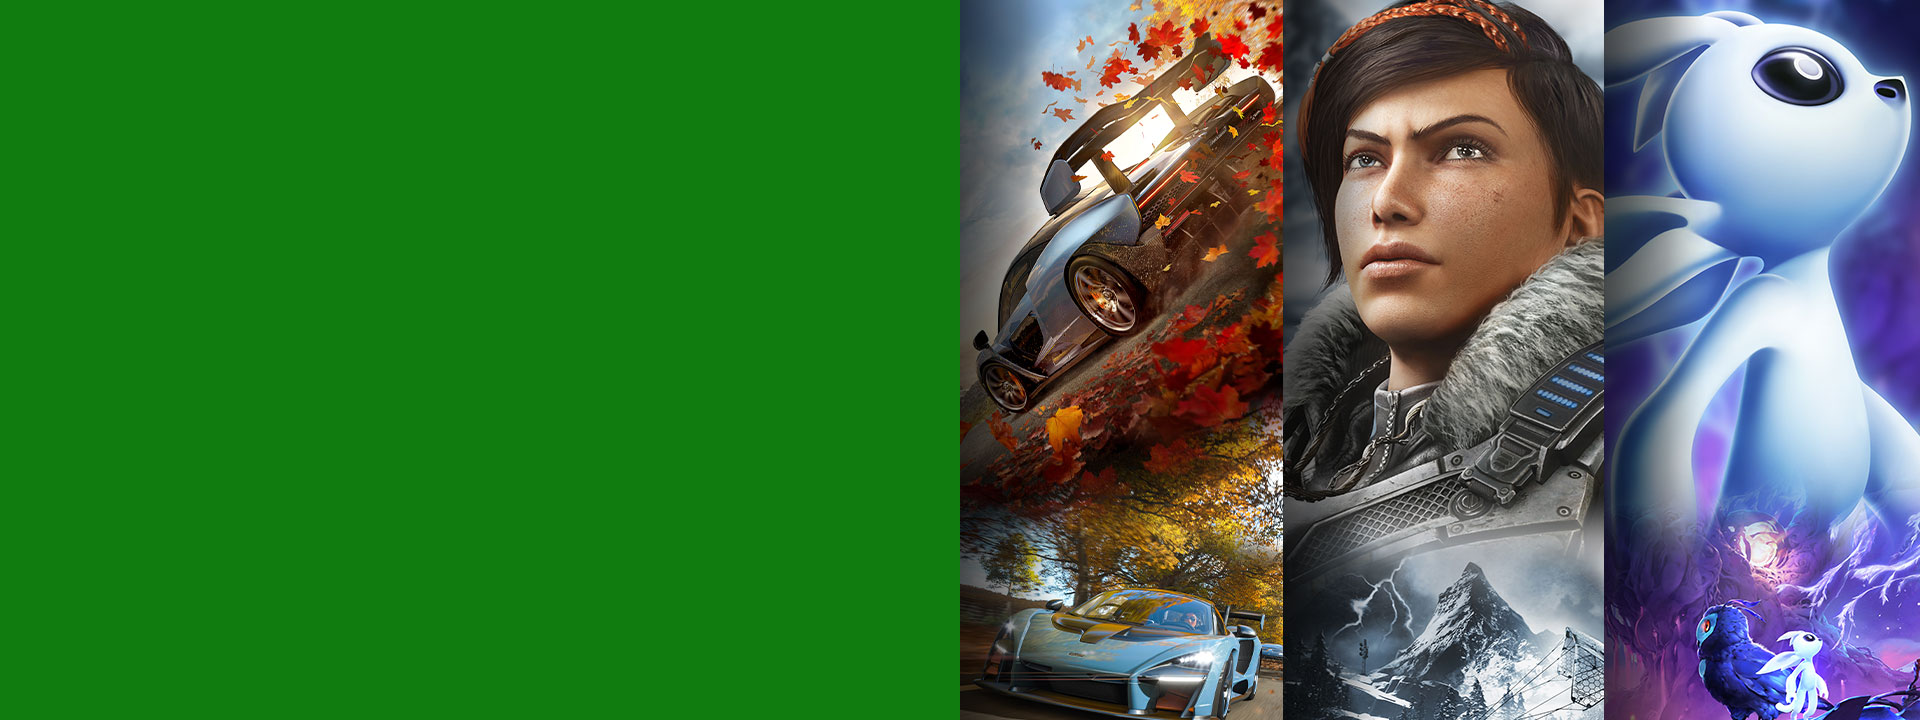 Un collage des plusieurs jeux disponibles avec Xbox Game Pass, notamment Forza Horizon 4, Gears 5 et Ori and the Will of the Wisps.